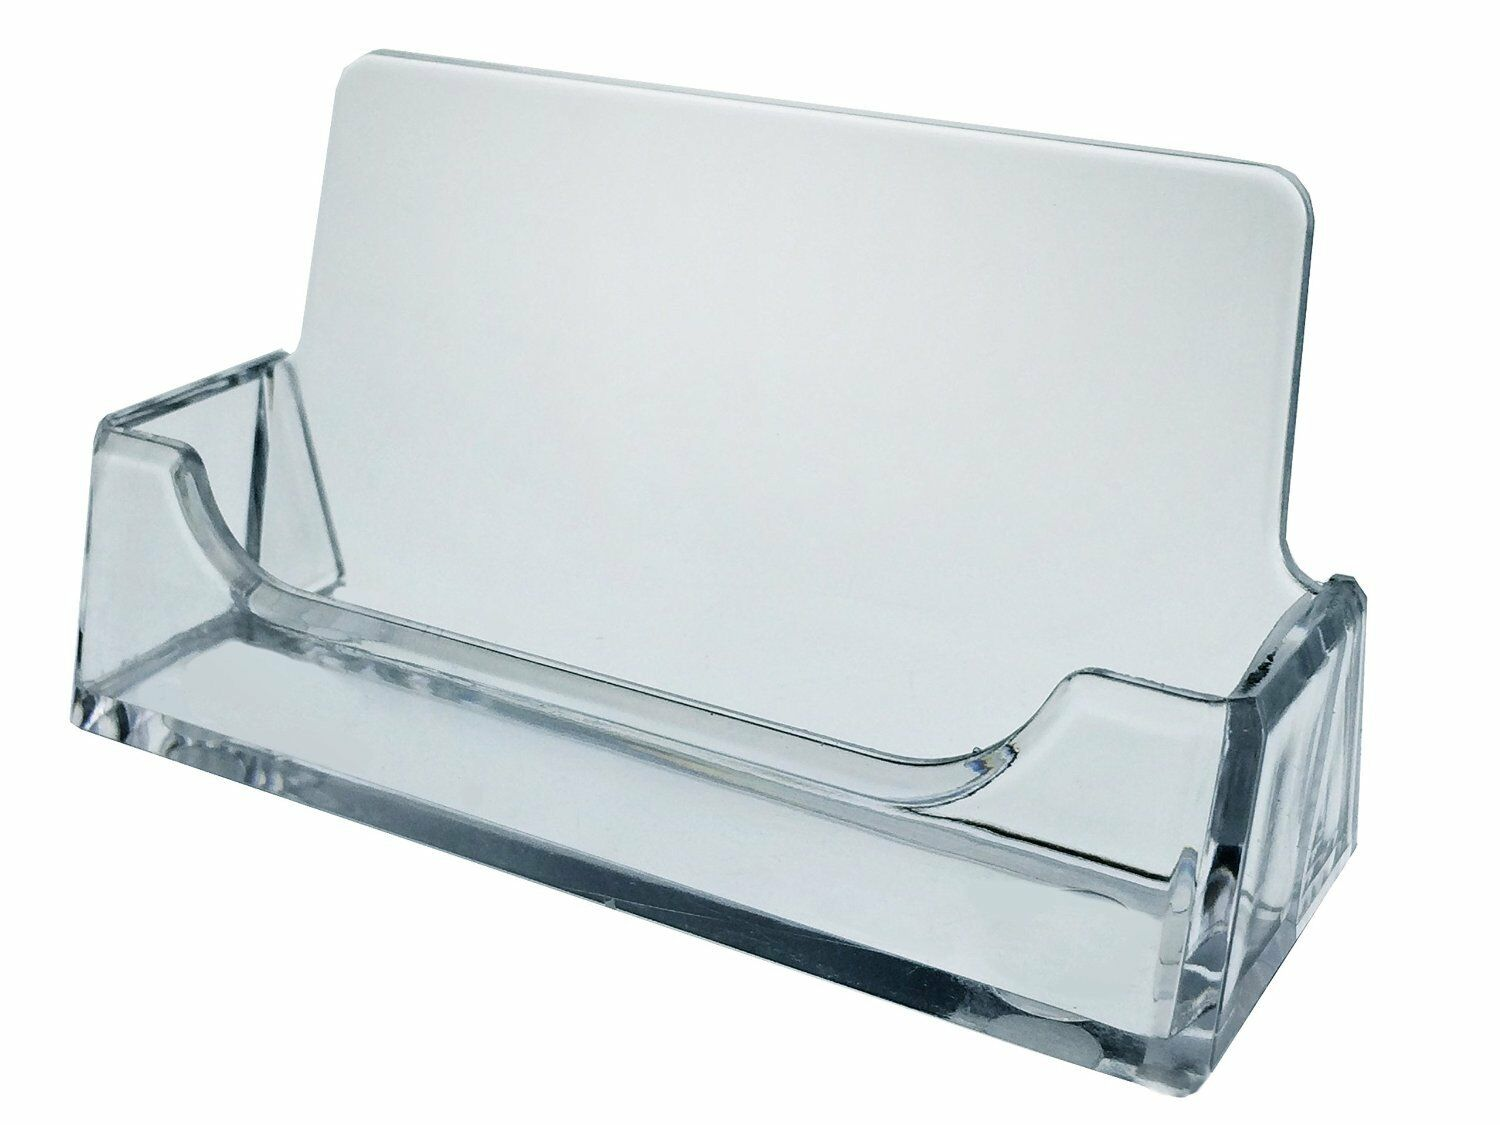 48 business card holder desktop clear acrylic display prioirty 48 business card holder desktop clear acrylic display prioirty shipping azm 1 of 4free shipping reheart Images